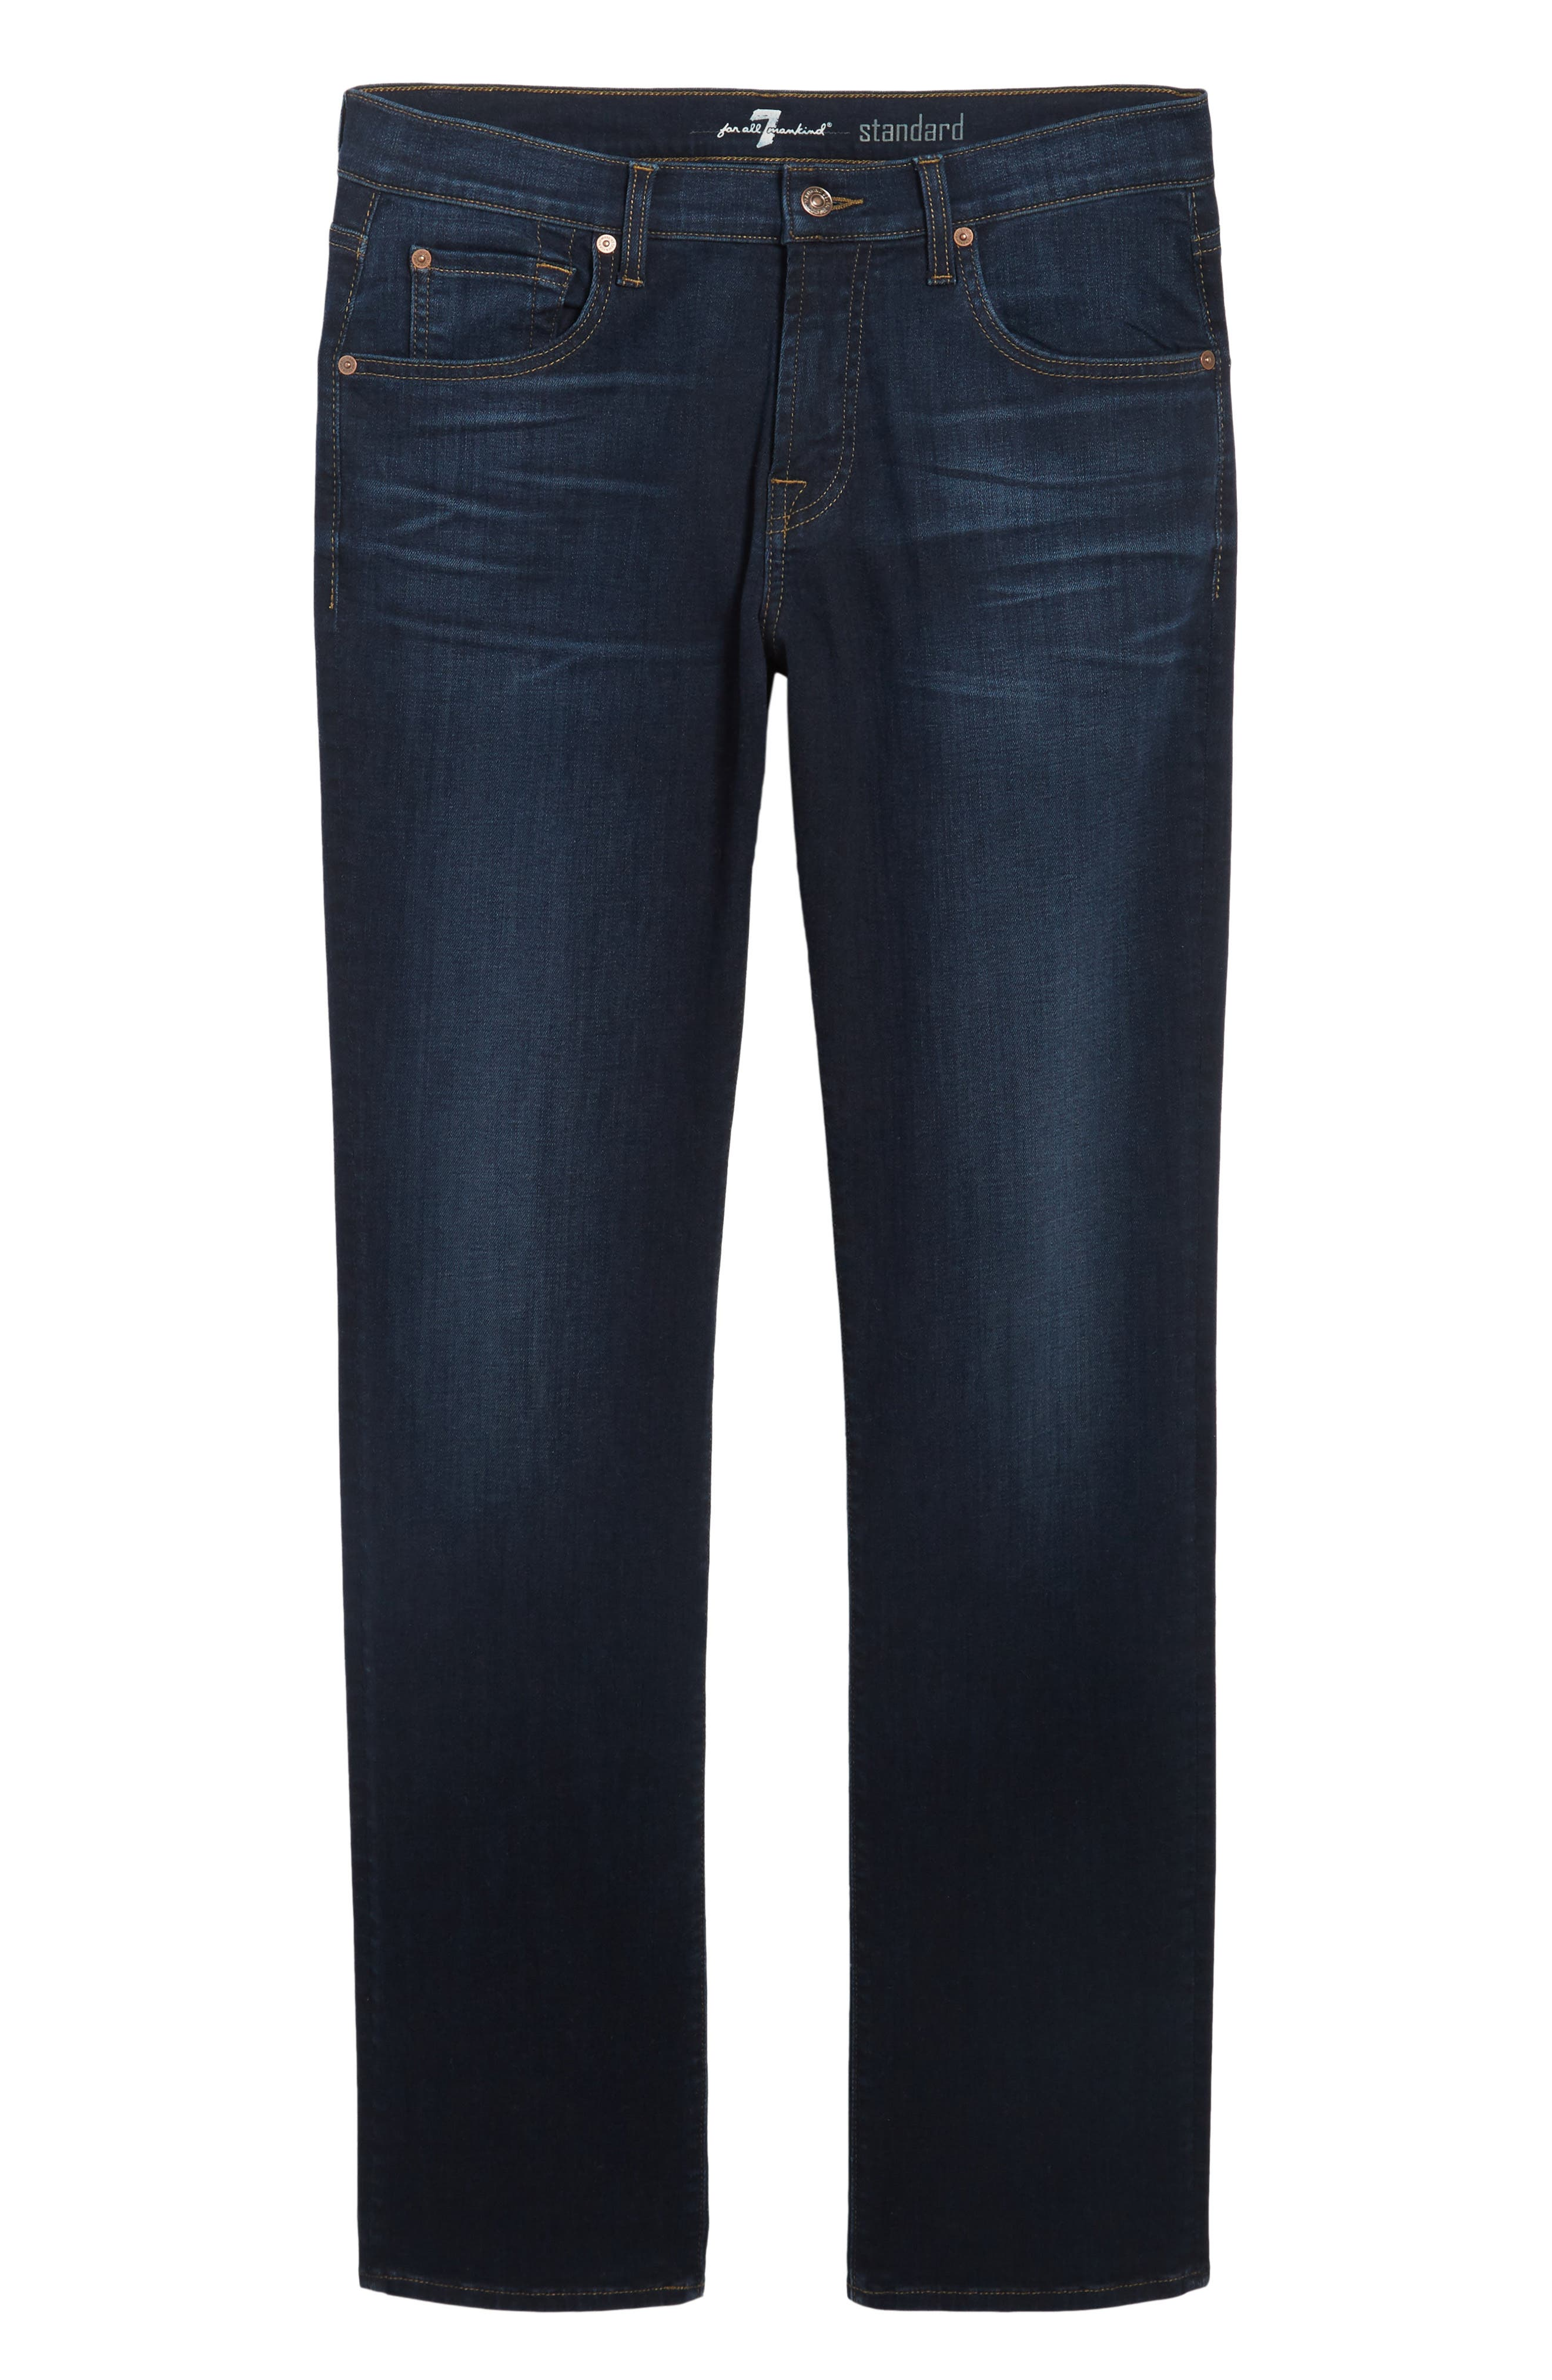 Standard Straight Fit Jeans,                             Alternate thumbnail 6, color,                             Albany